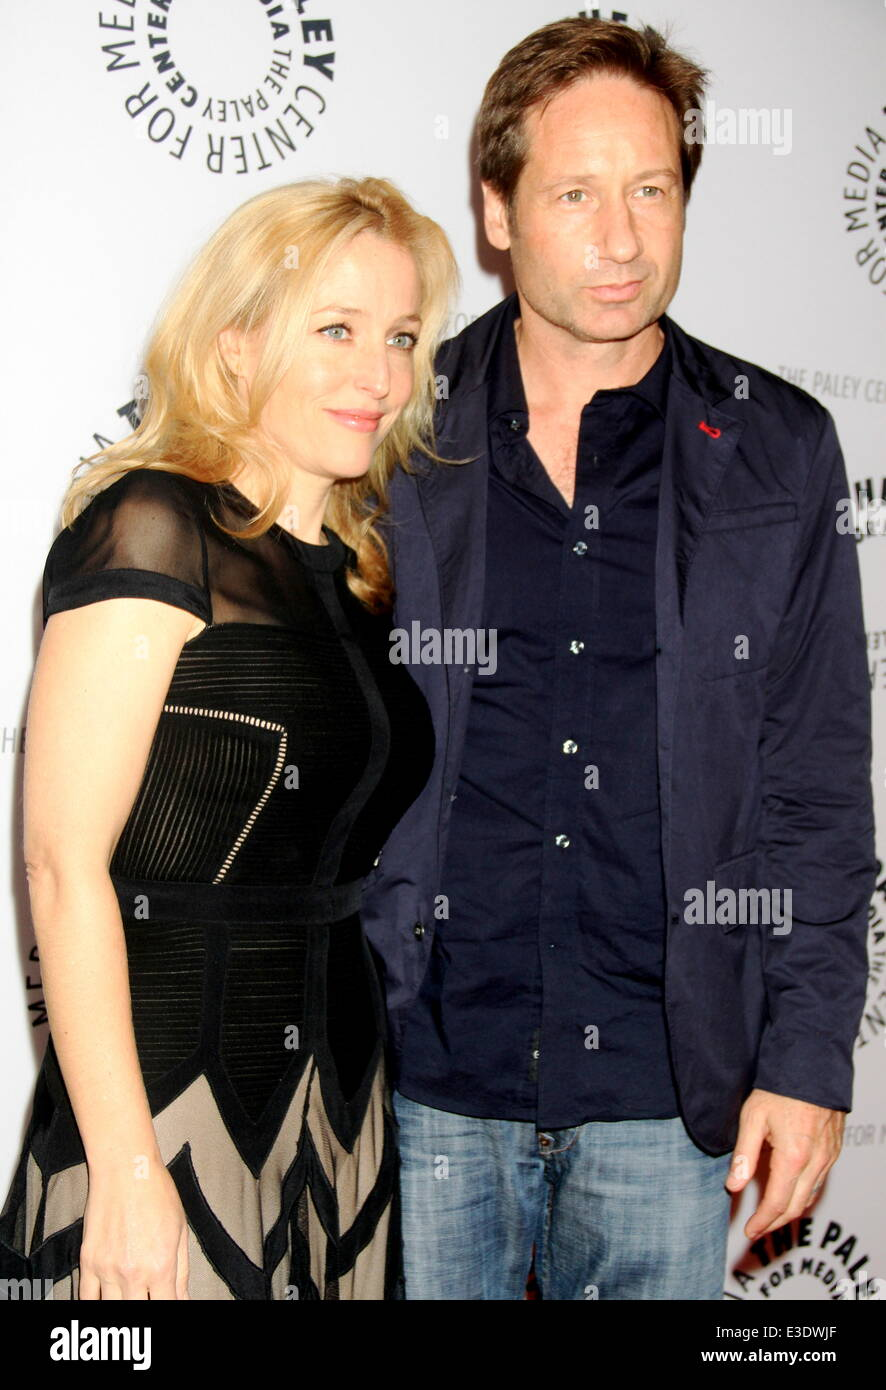 Paley Center for Media  Media presents ''The Truth is Here'' with David Duchovny and Gillian Anderson - Stock Image